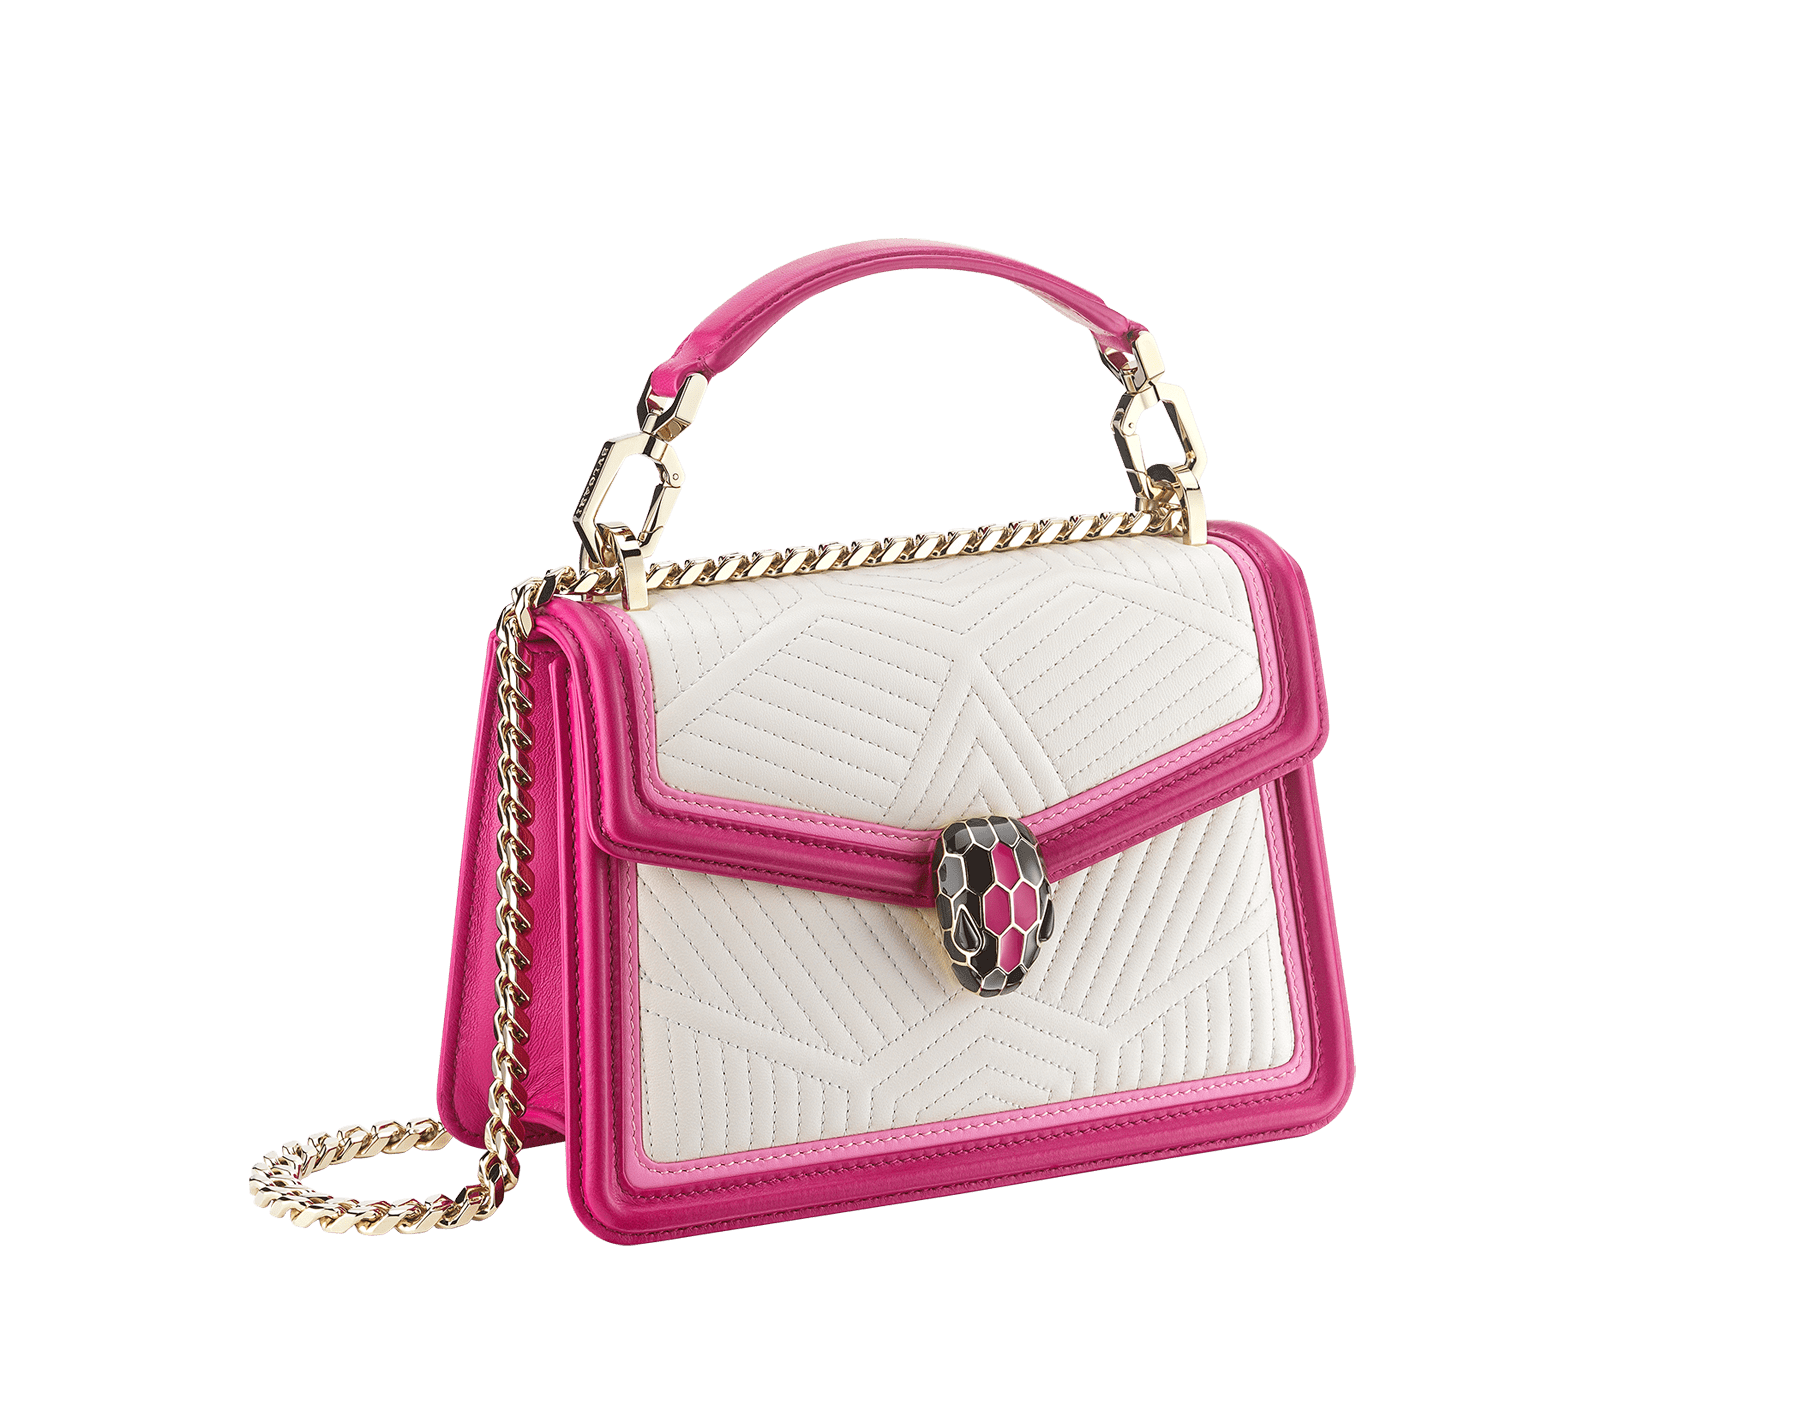 """Serpenti Diamond Blast"" top handle bag in white agate quilted nappa leather and berry tourmaline smooth calf leather frames. Iconic snakehead closure in light gold-plated brass enhanced with matte black and shiny berry tourmaline enamel and black onyx eyes. 289943 image 2"